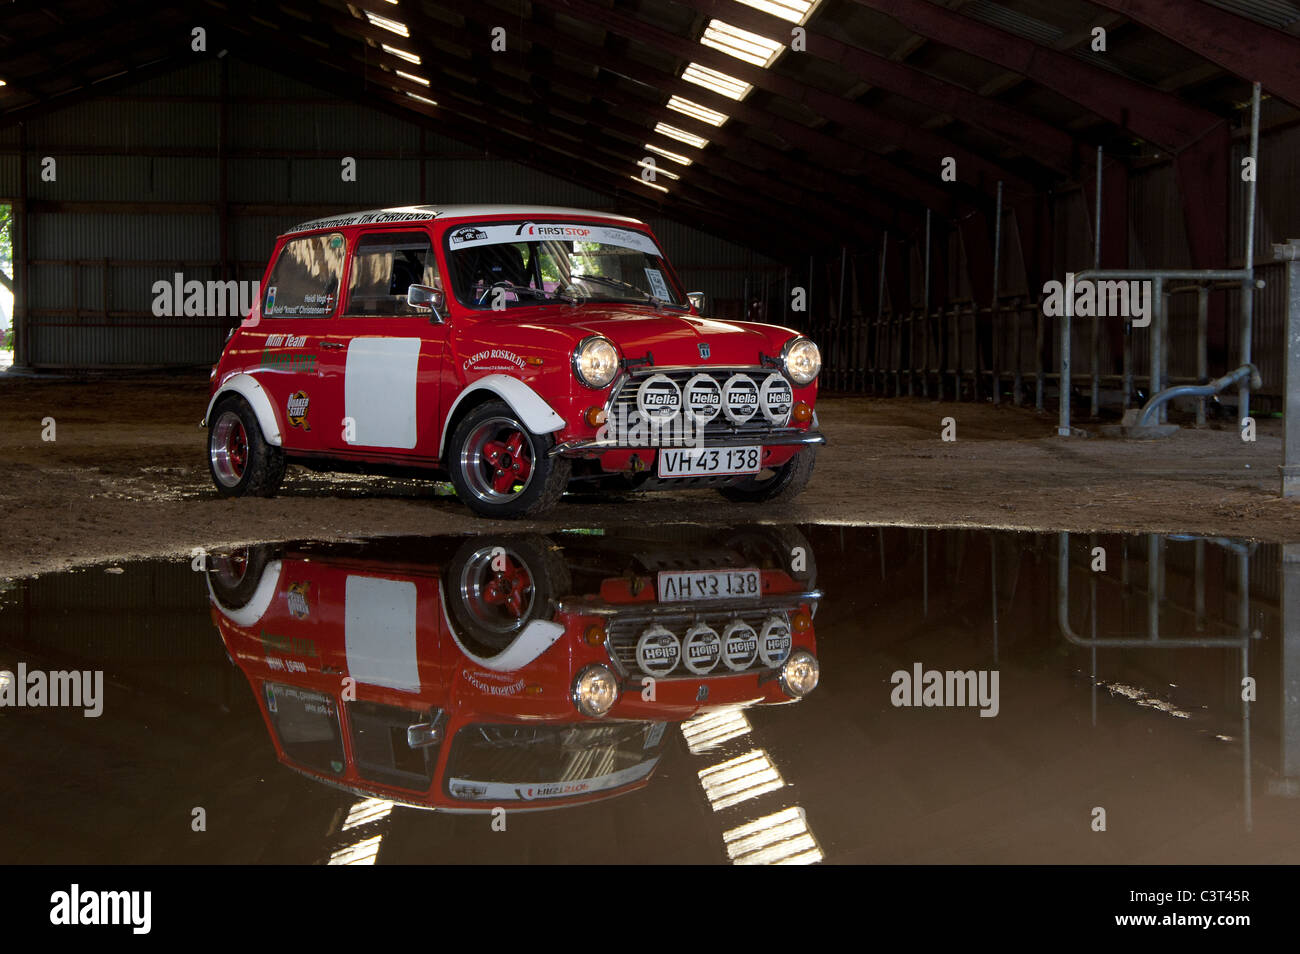 Austin Mini rally car - Stock Image